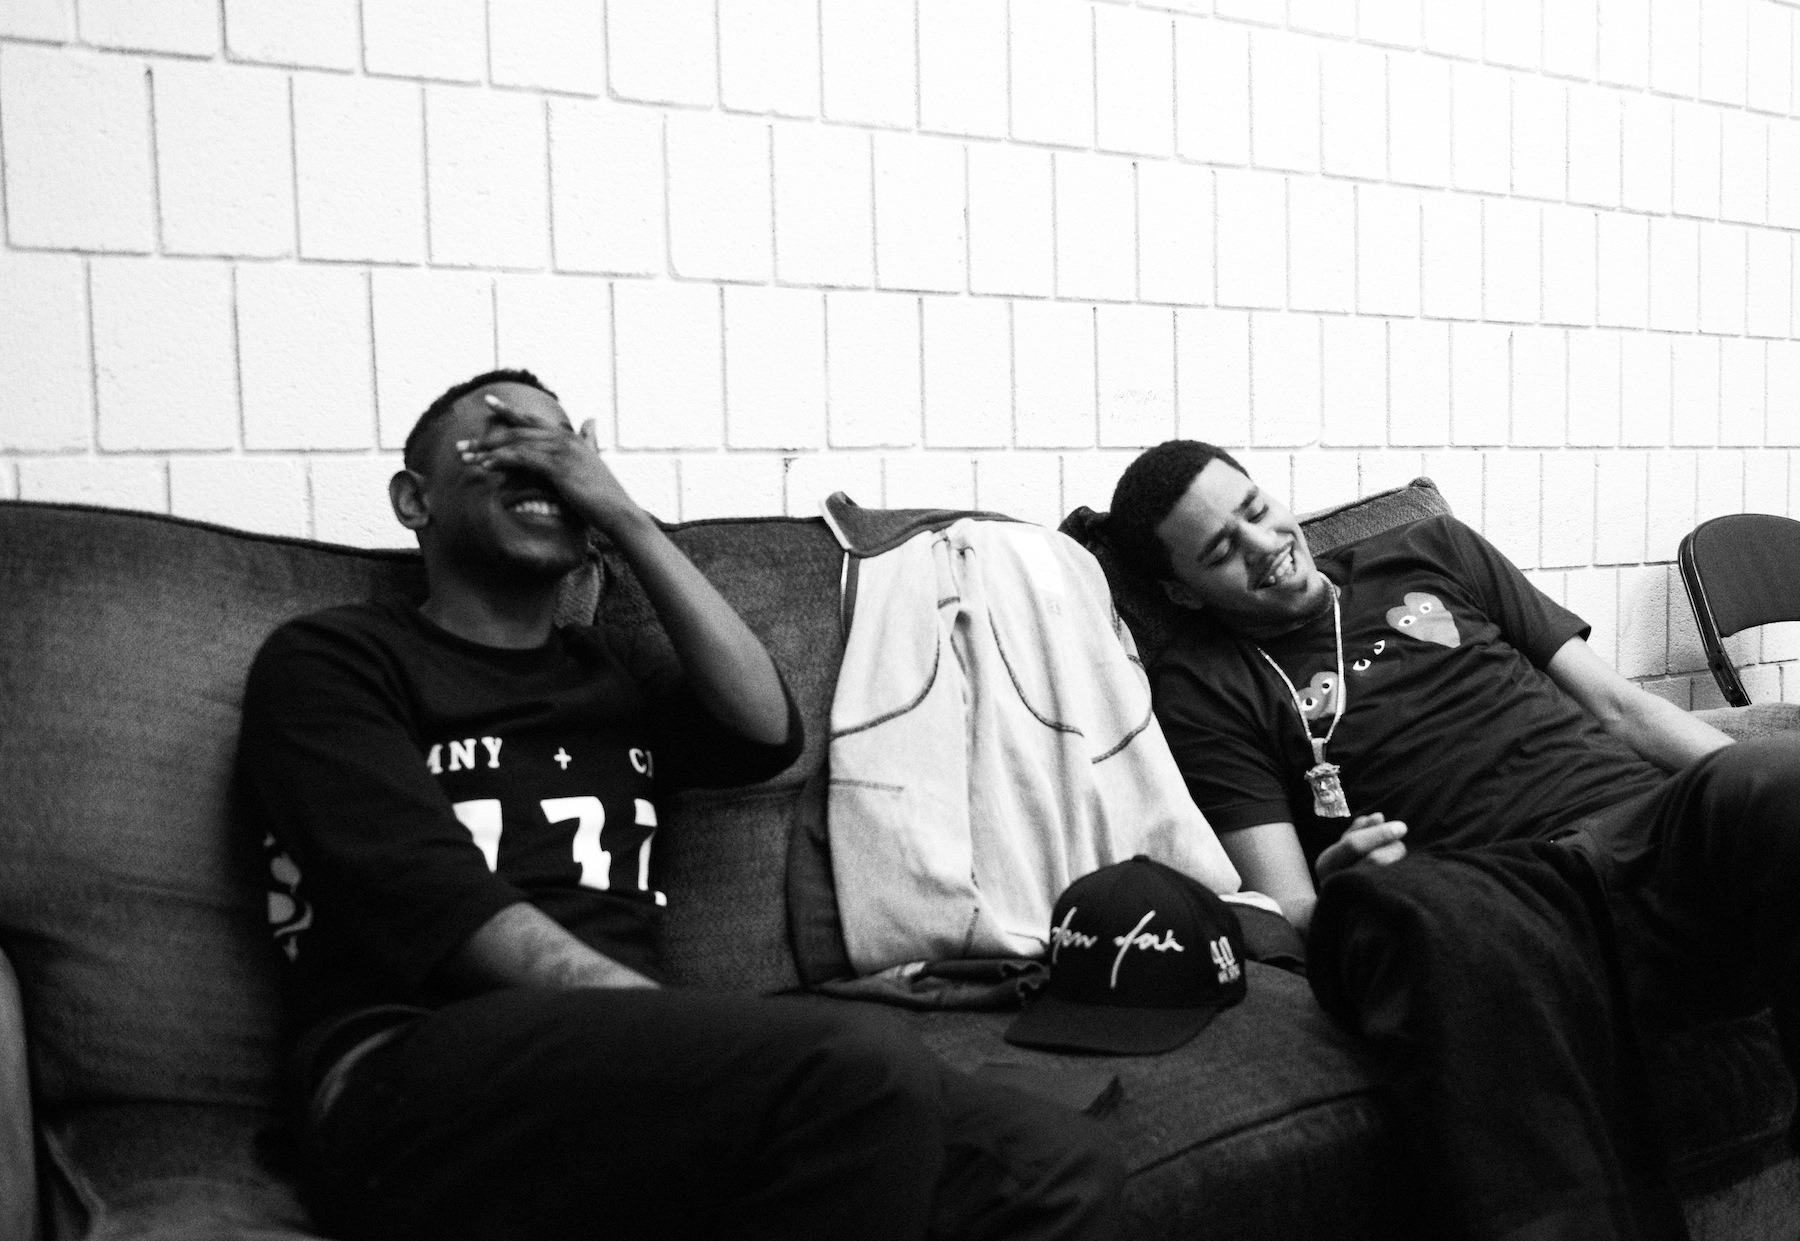 Kendrick & J. Cole's Surprise Freestyles On Each Other's Tracks